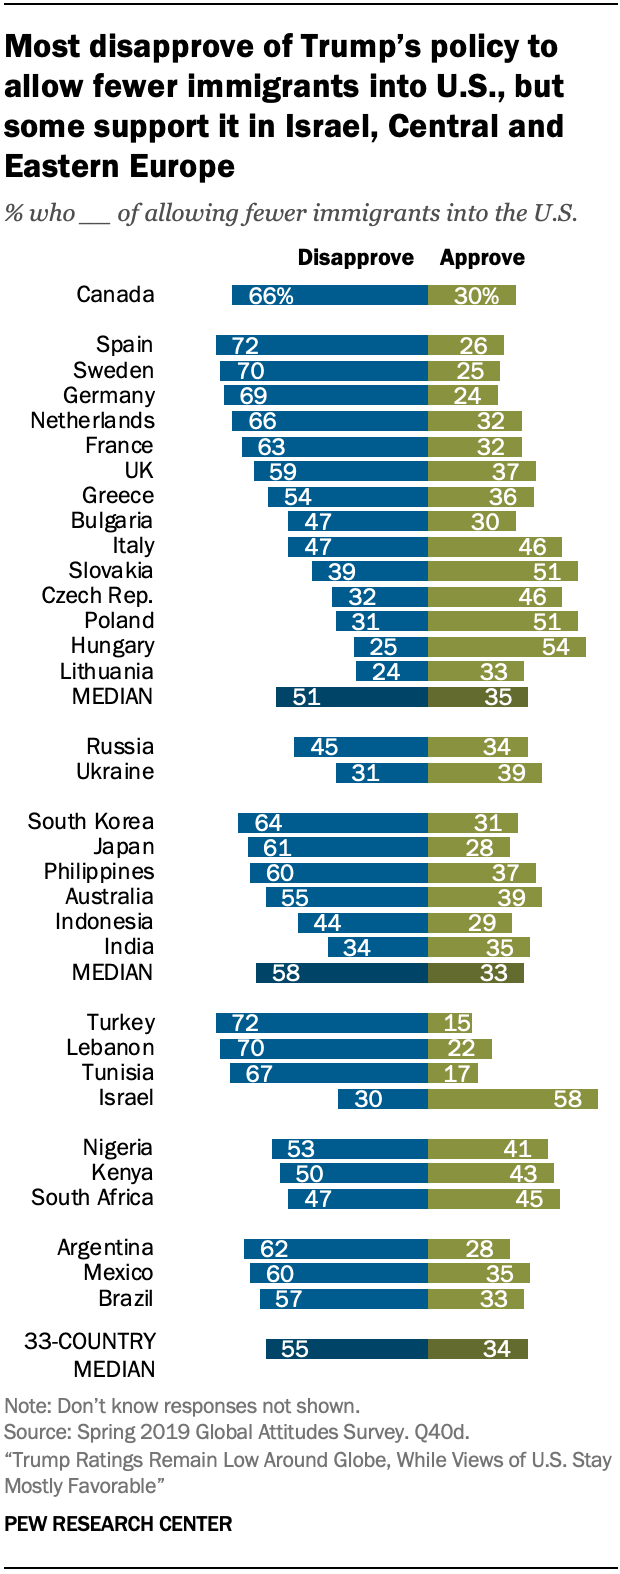 Most disapprove of Trump's policy to allow fewer immigrants into U.S., but some support it in Israel, Central and Eastern Europe